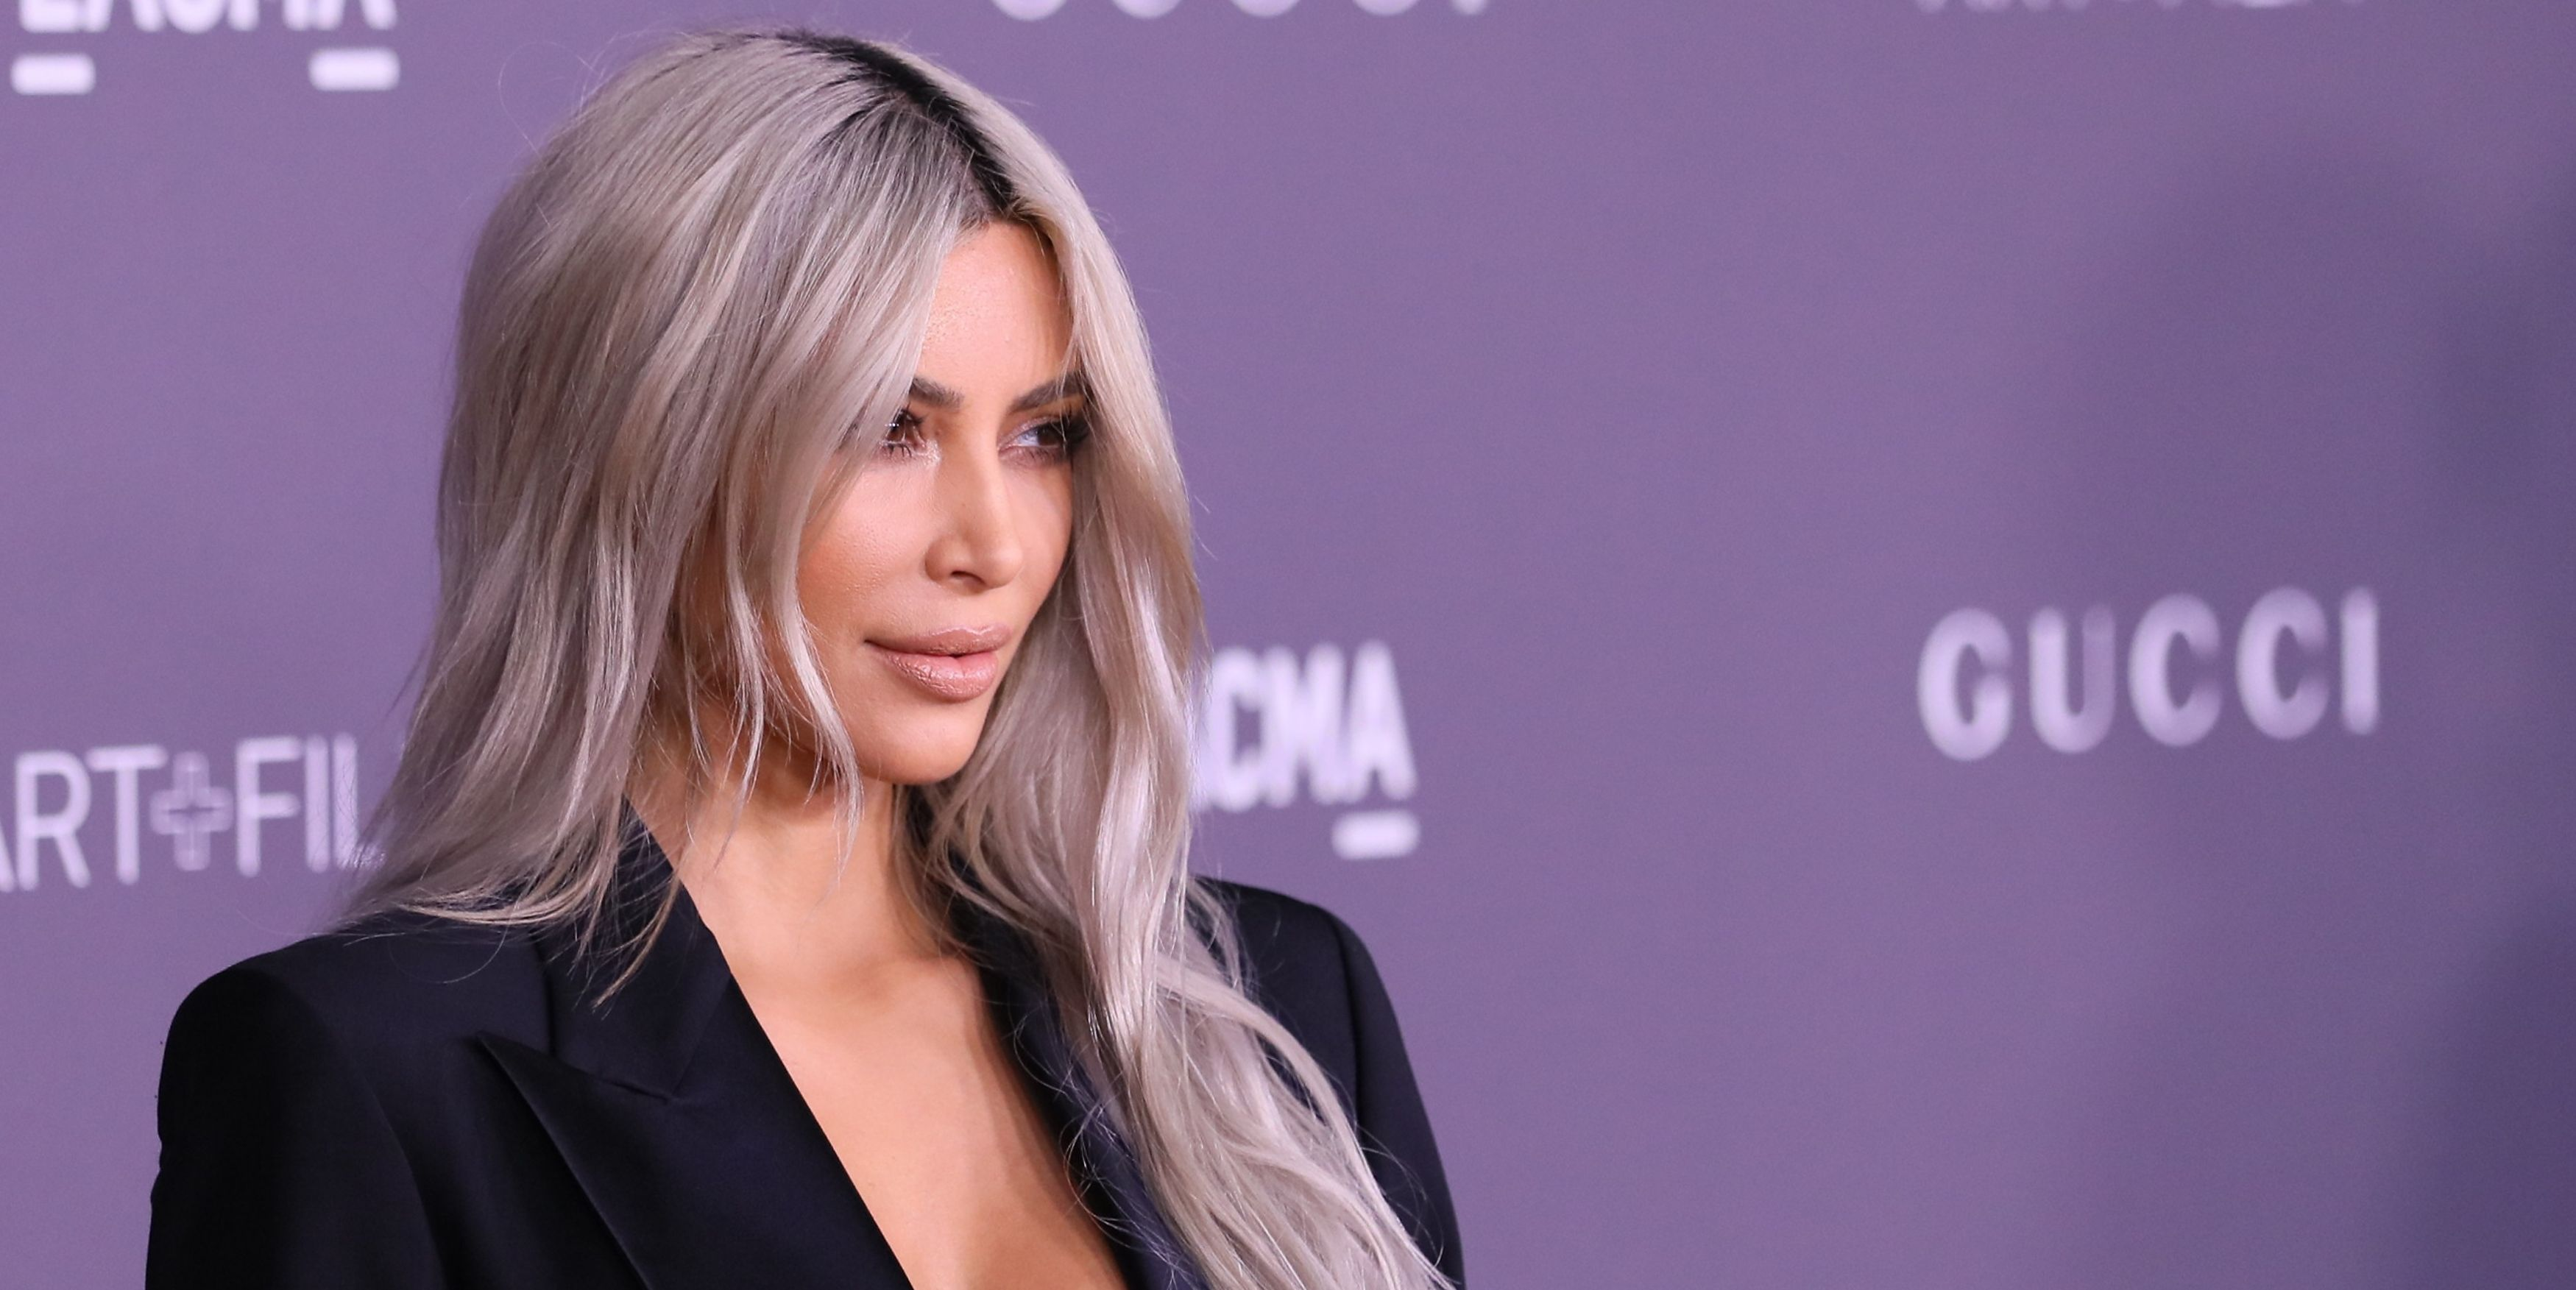 Kim Kardashian Rocks a Gucci Pantsuit Without a Top in L.A.